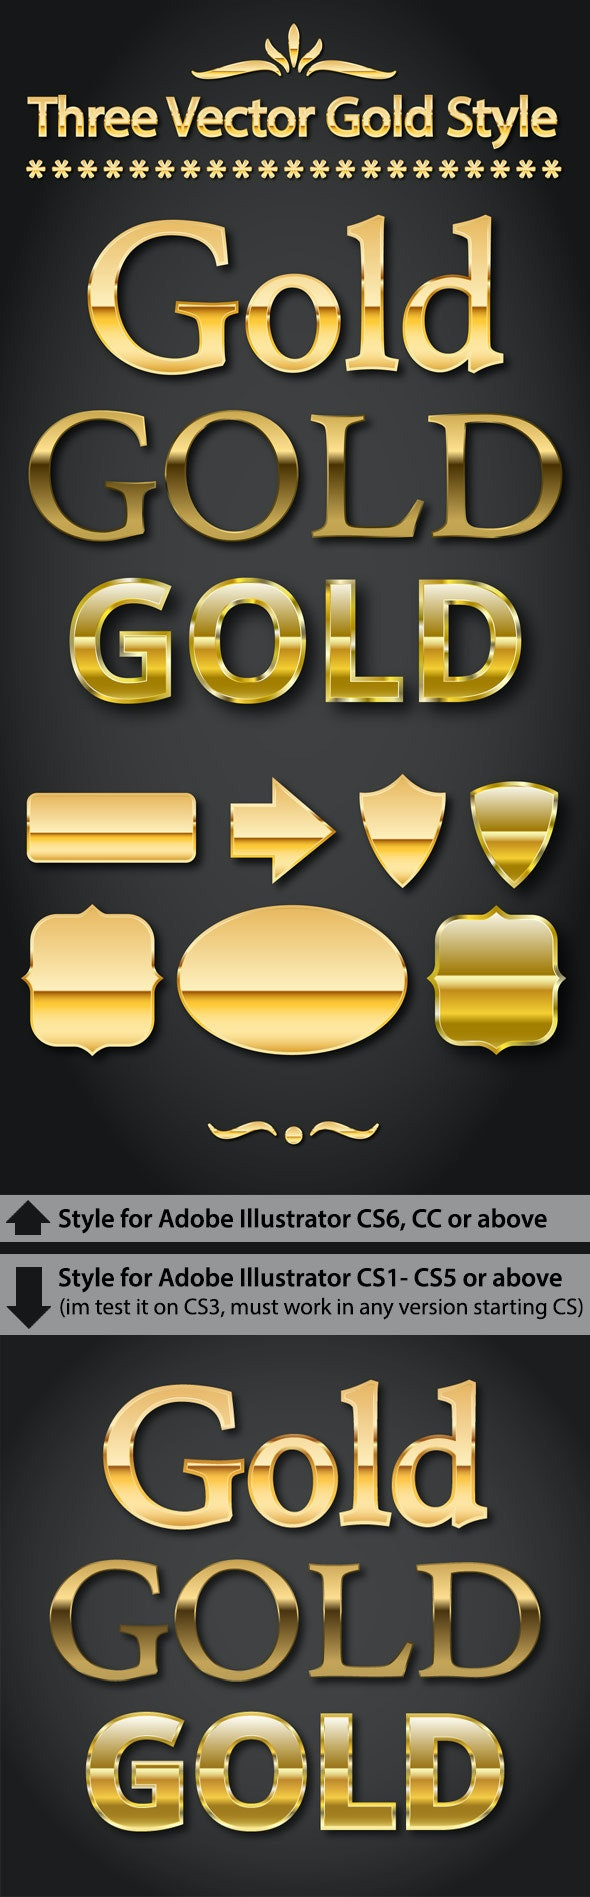 Gold Text Styles for Adobe Illustrator